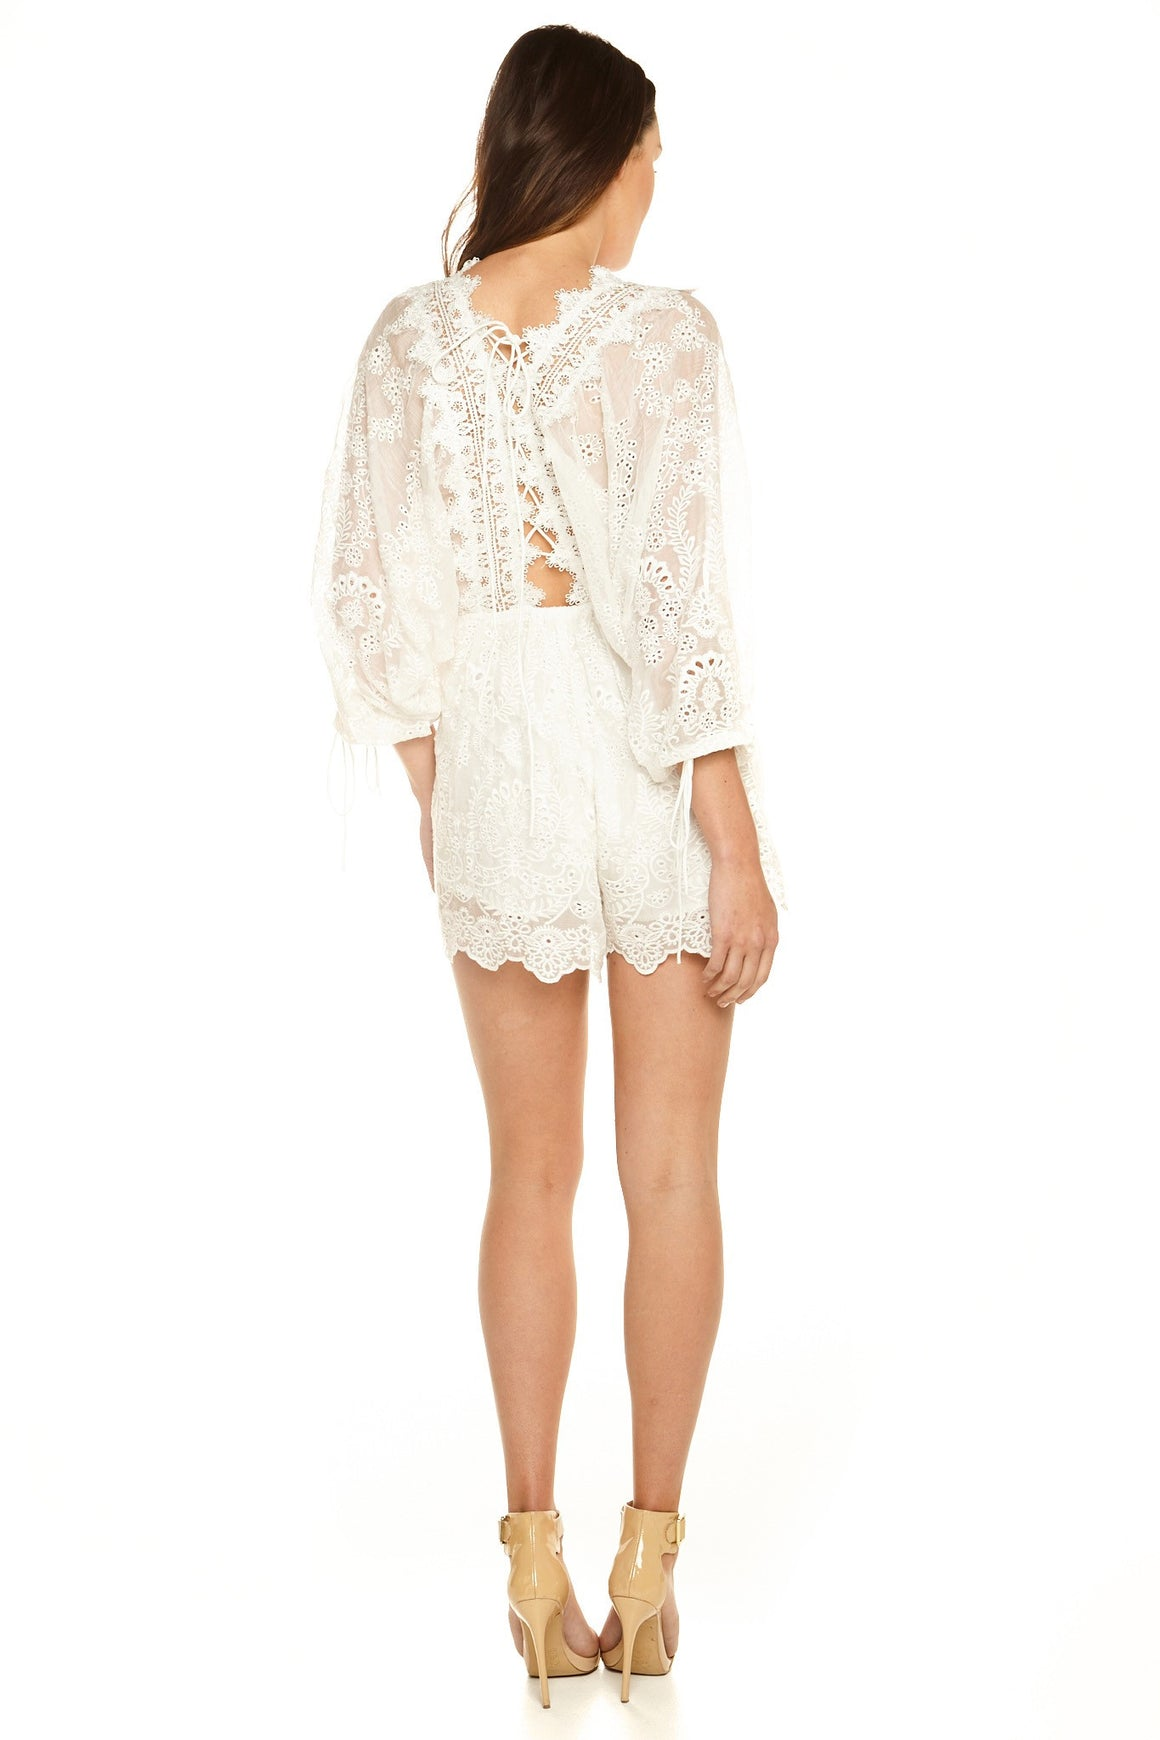 Mondrian Lace Playsuit